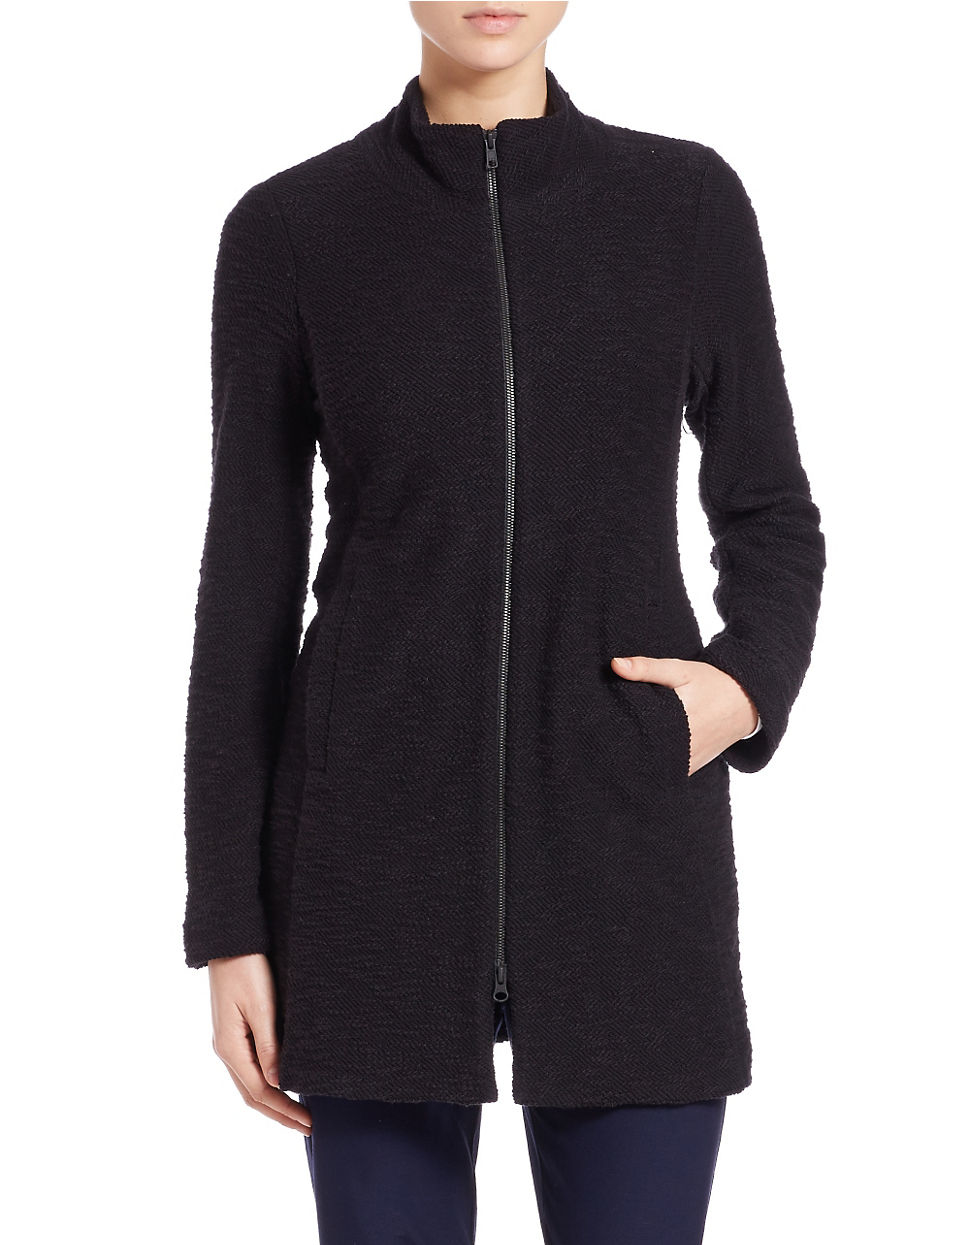 Eileen fisher Long Zip Up Sweater in Black | Lyst